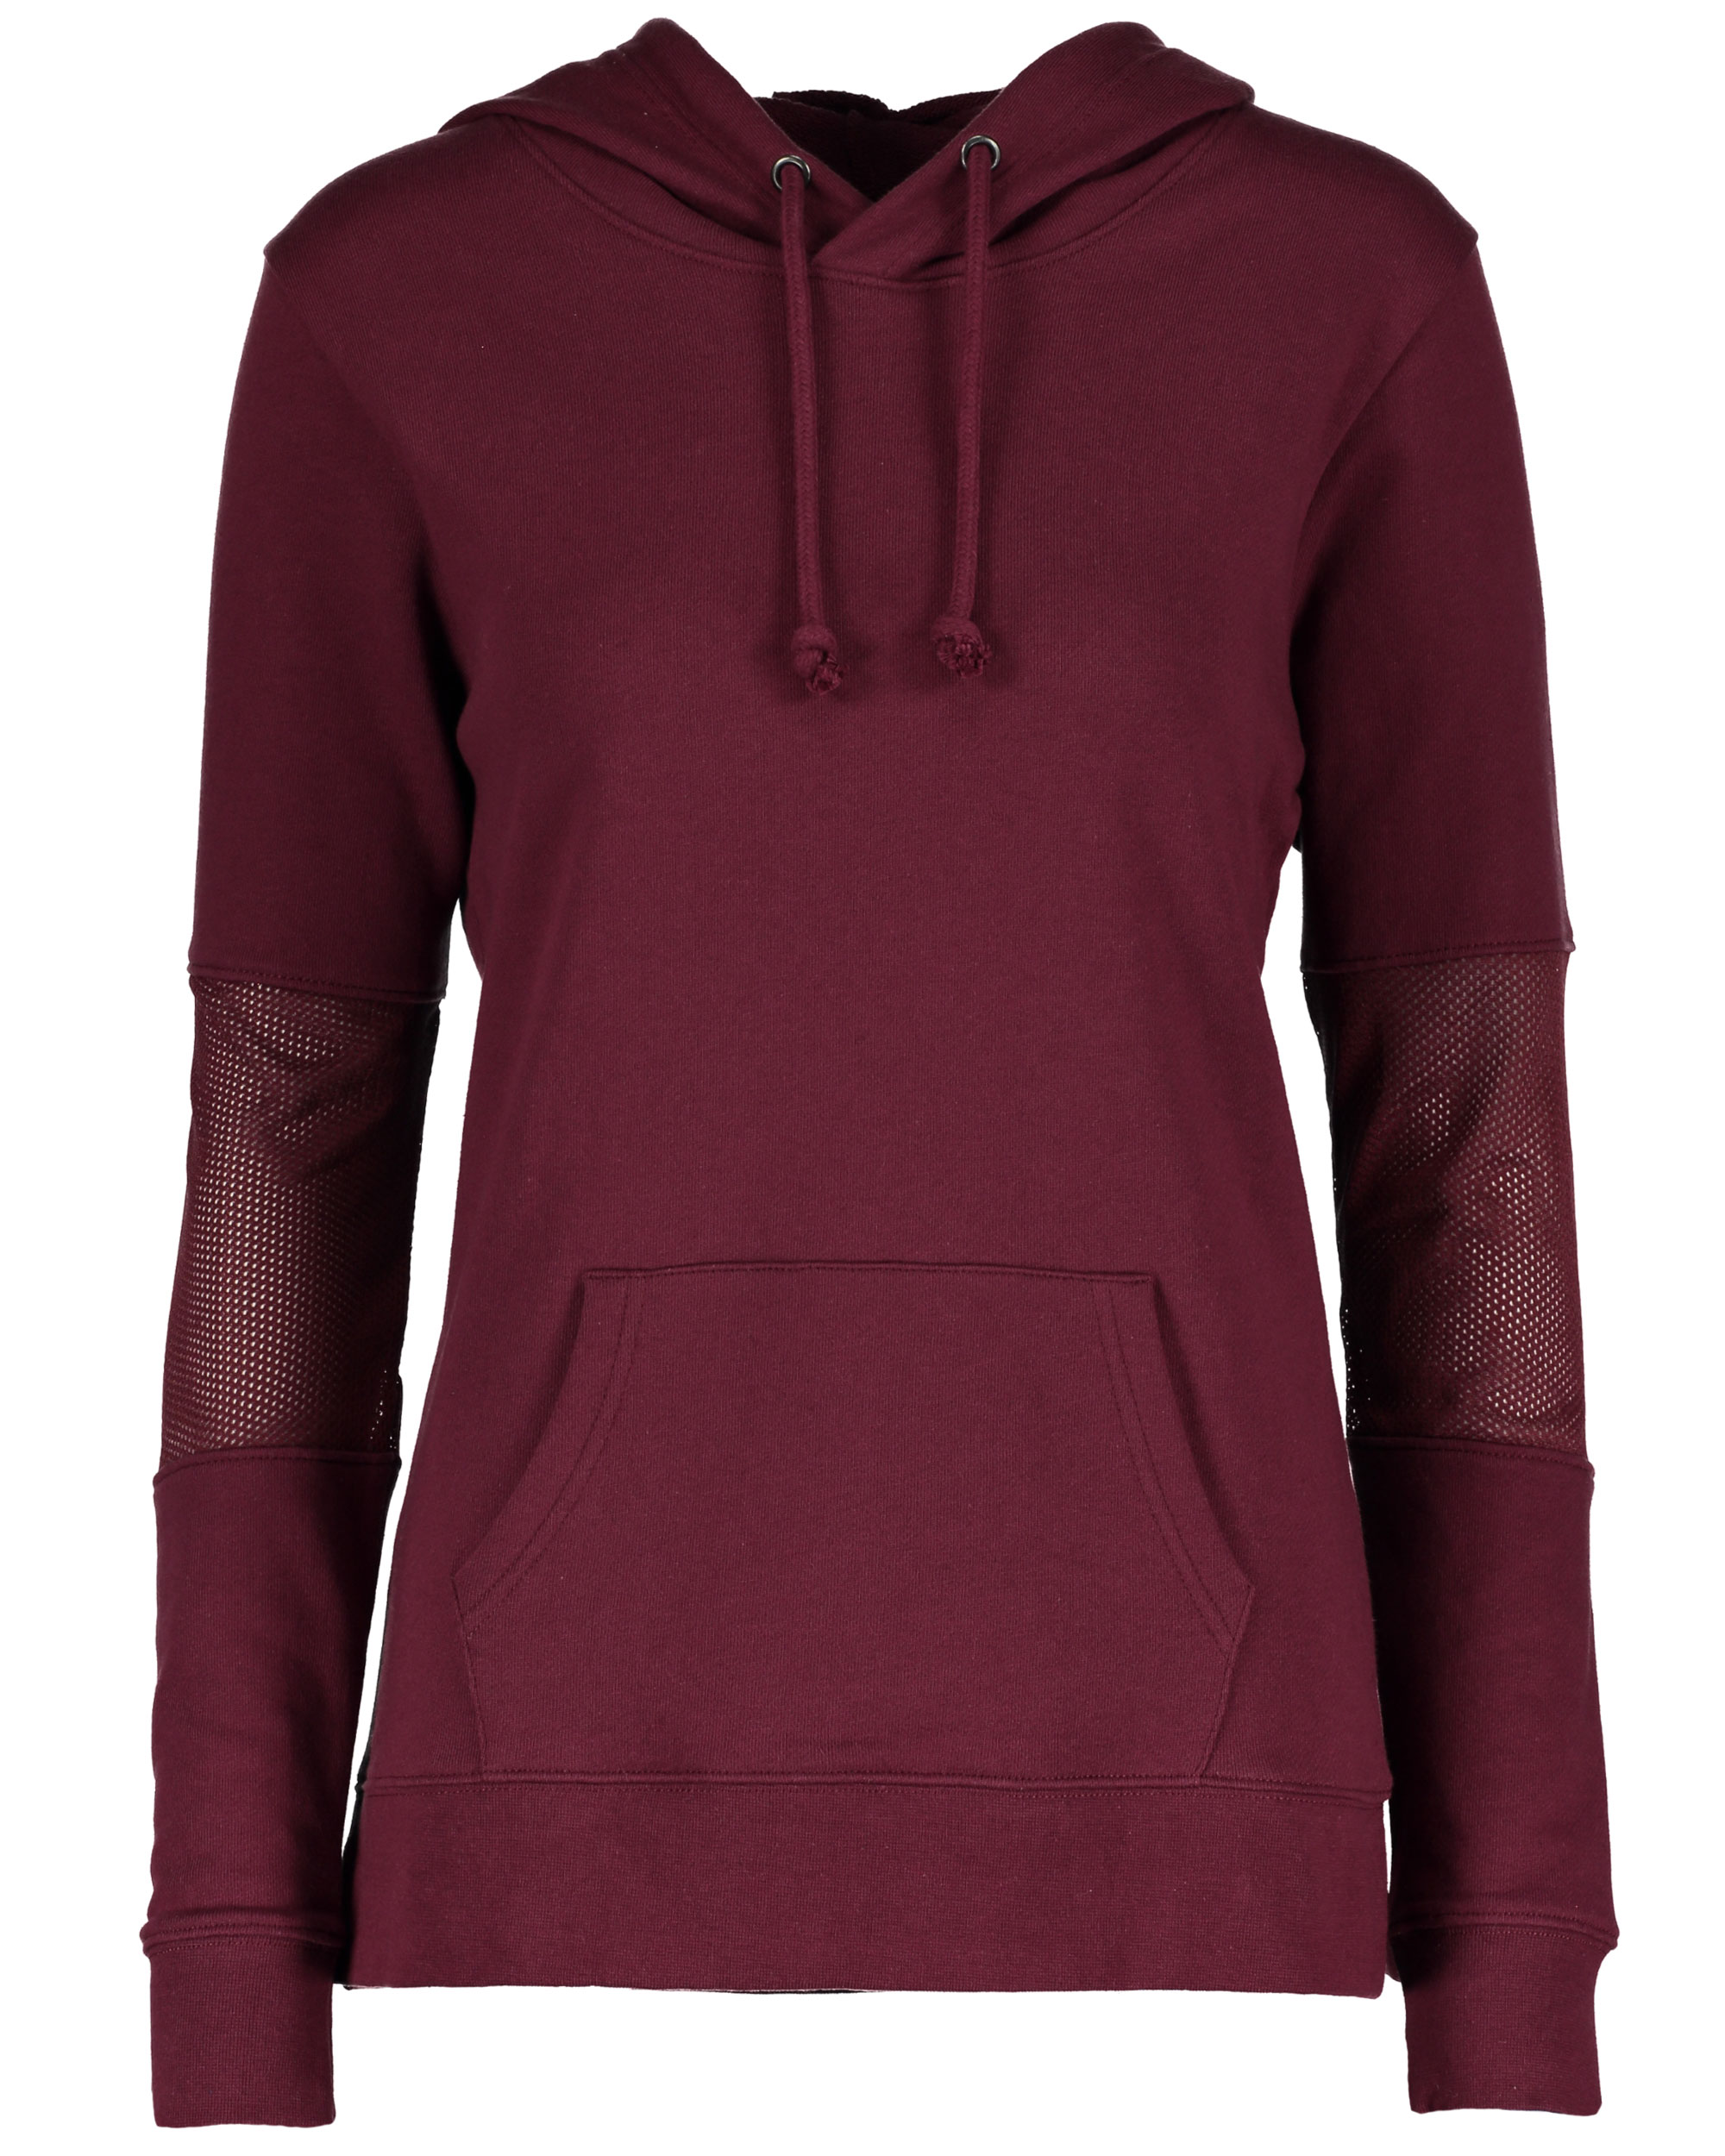 Enza 36779 - Ladies Pullover Hood with Mesh Inset on Sleeve